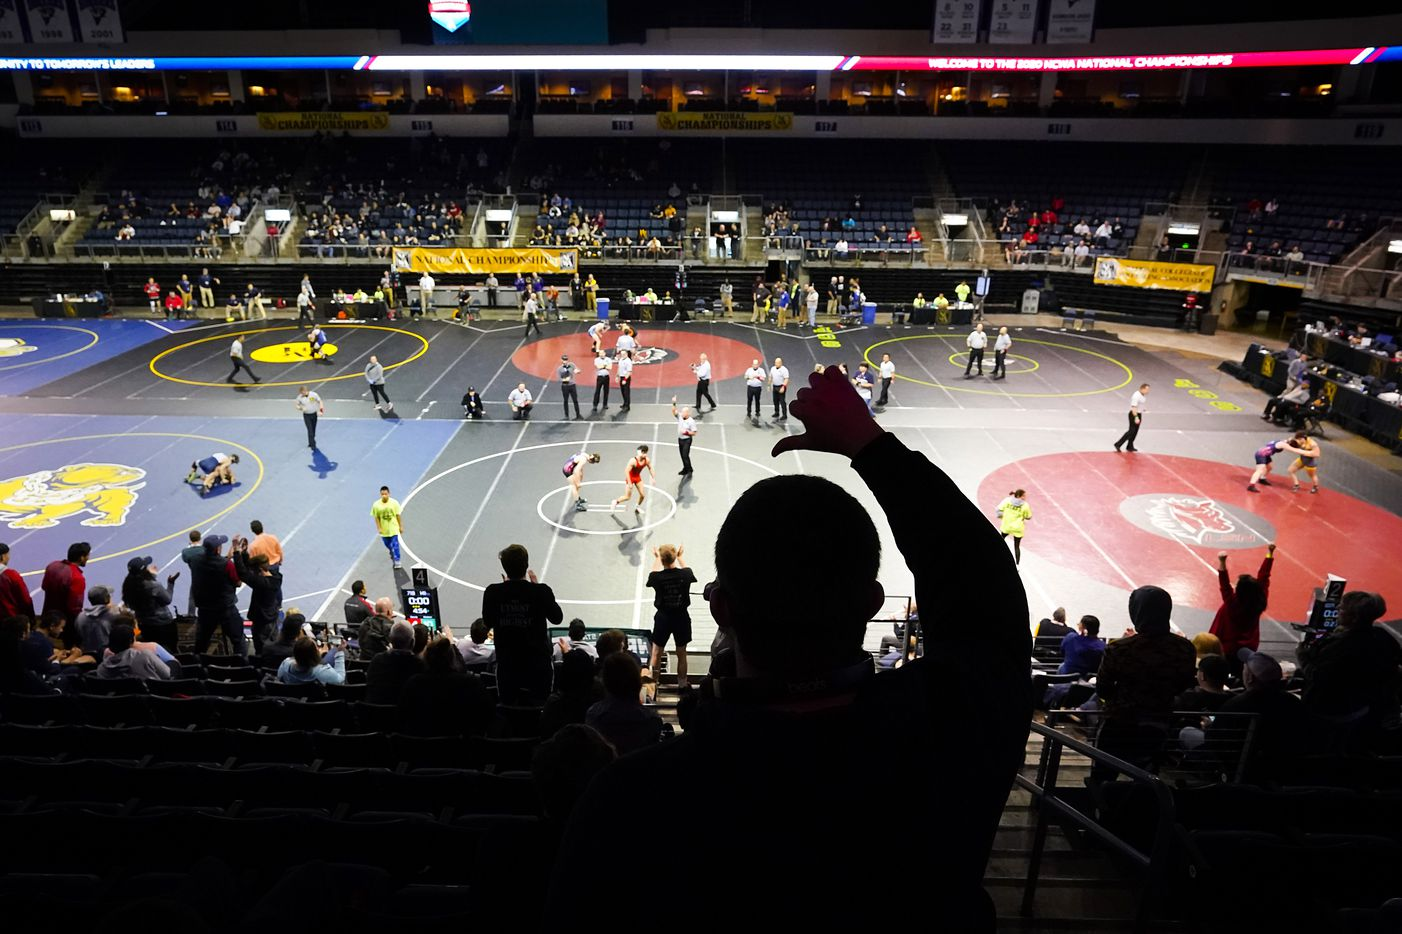 A fan gives a thumbs down to a refereeÕs decision during the NCWA national championships at the Allen Events Center on Friday, March 13, 2020, in Allen, Texas.